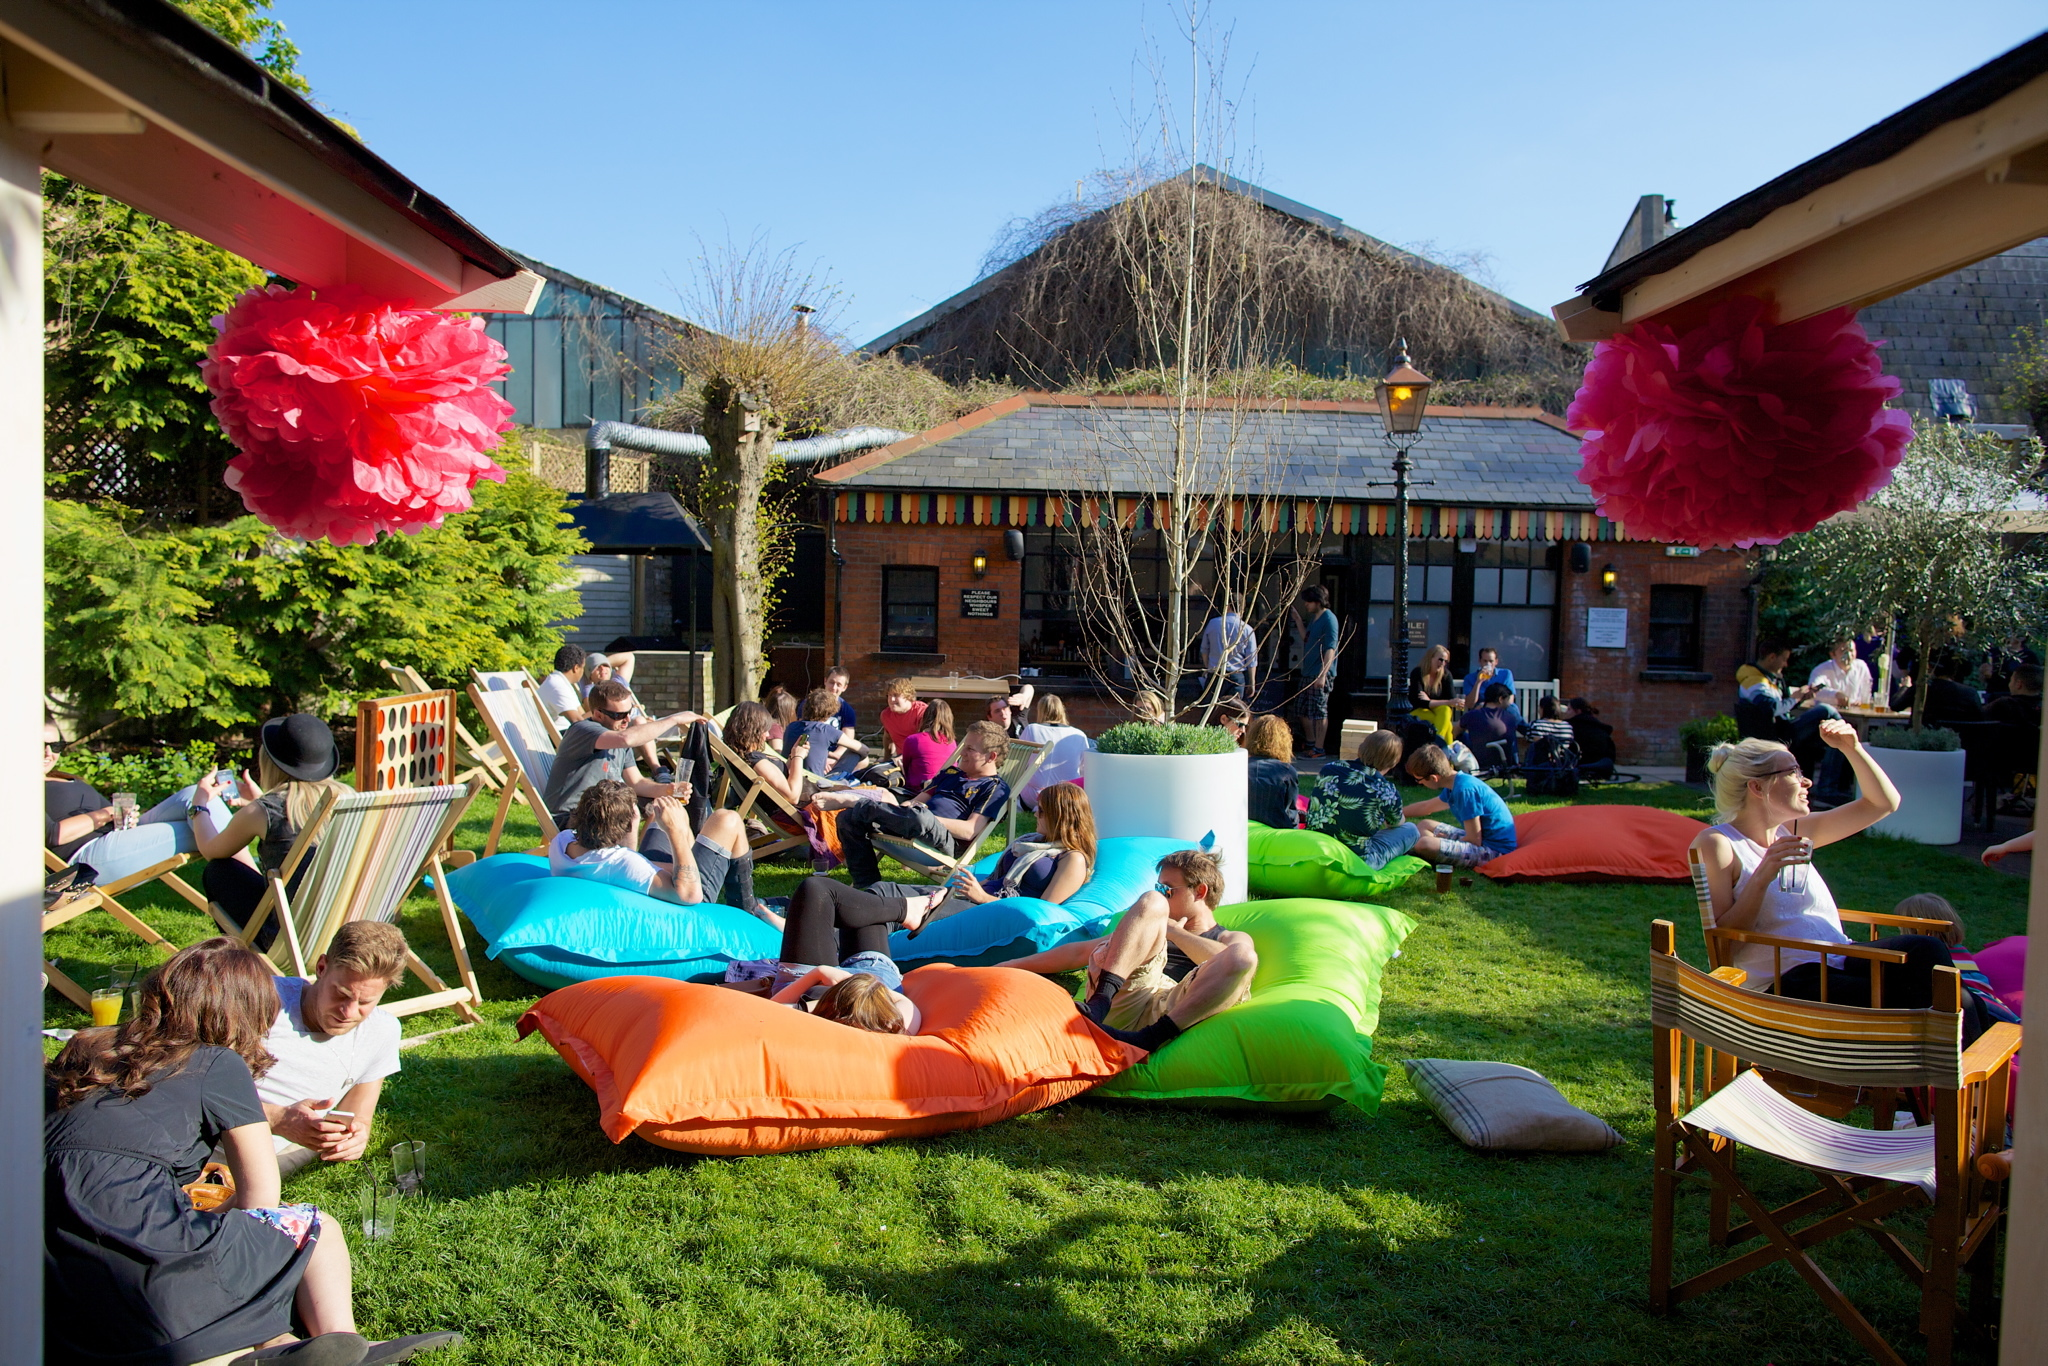 London S Best Beer Gardens Bars Time Out London